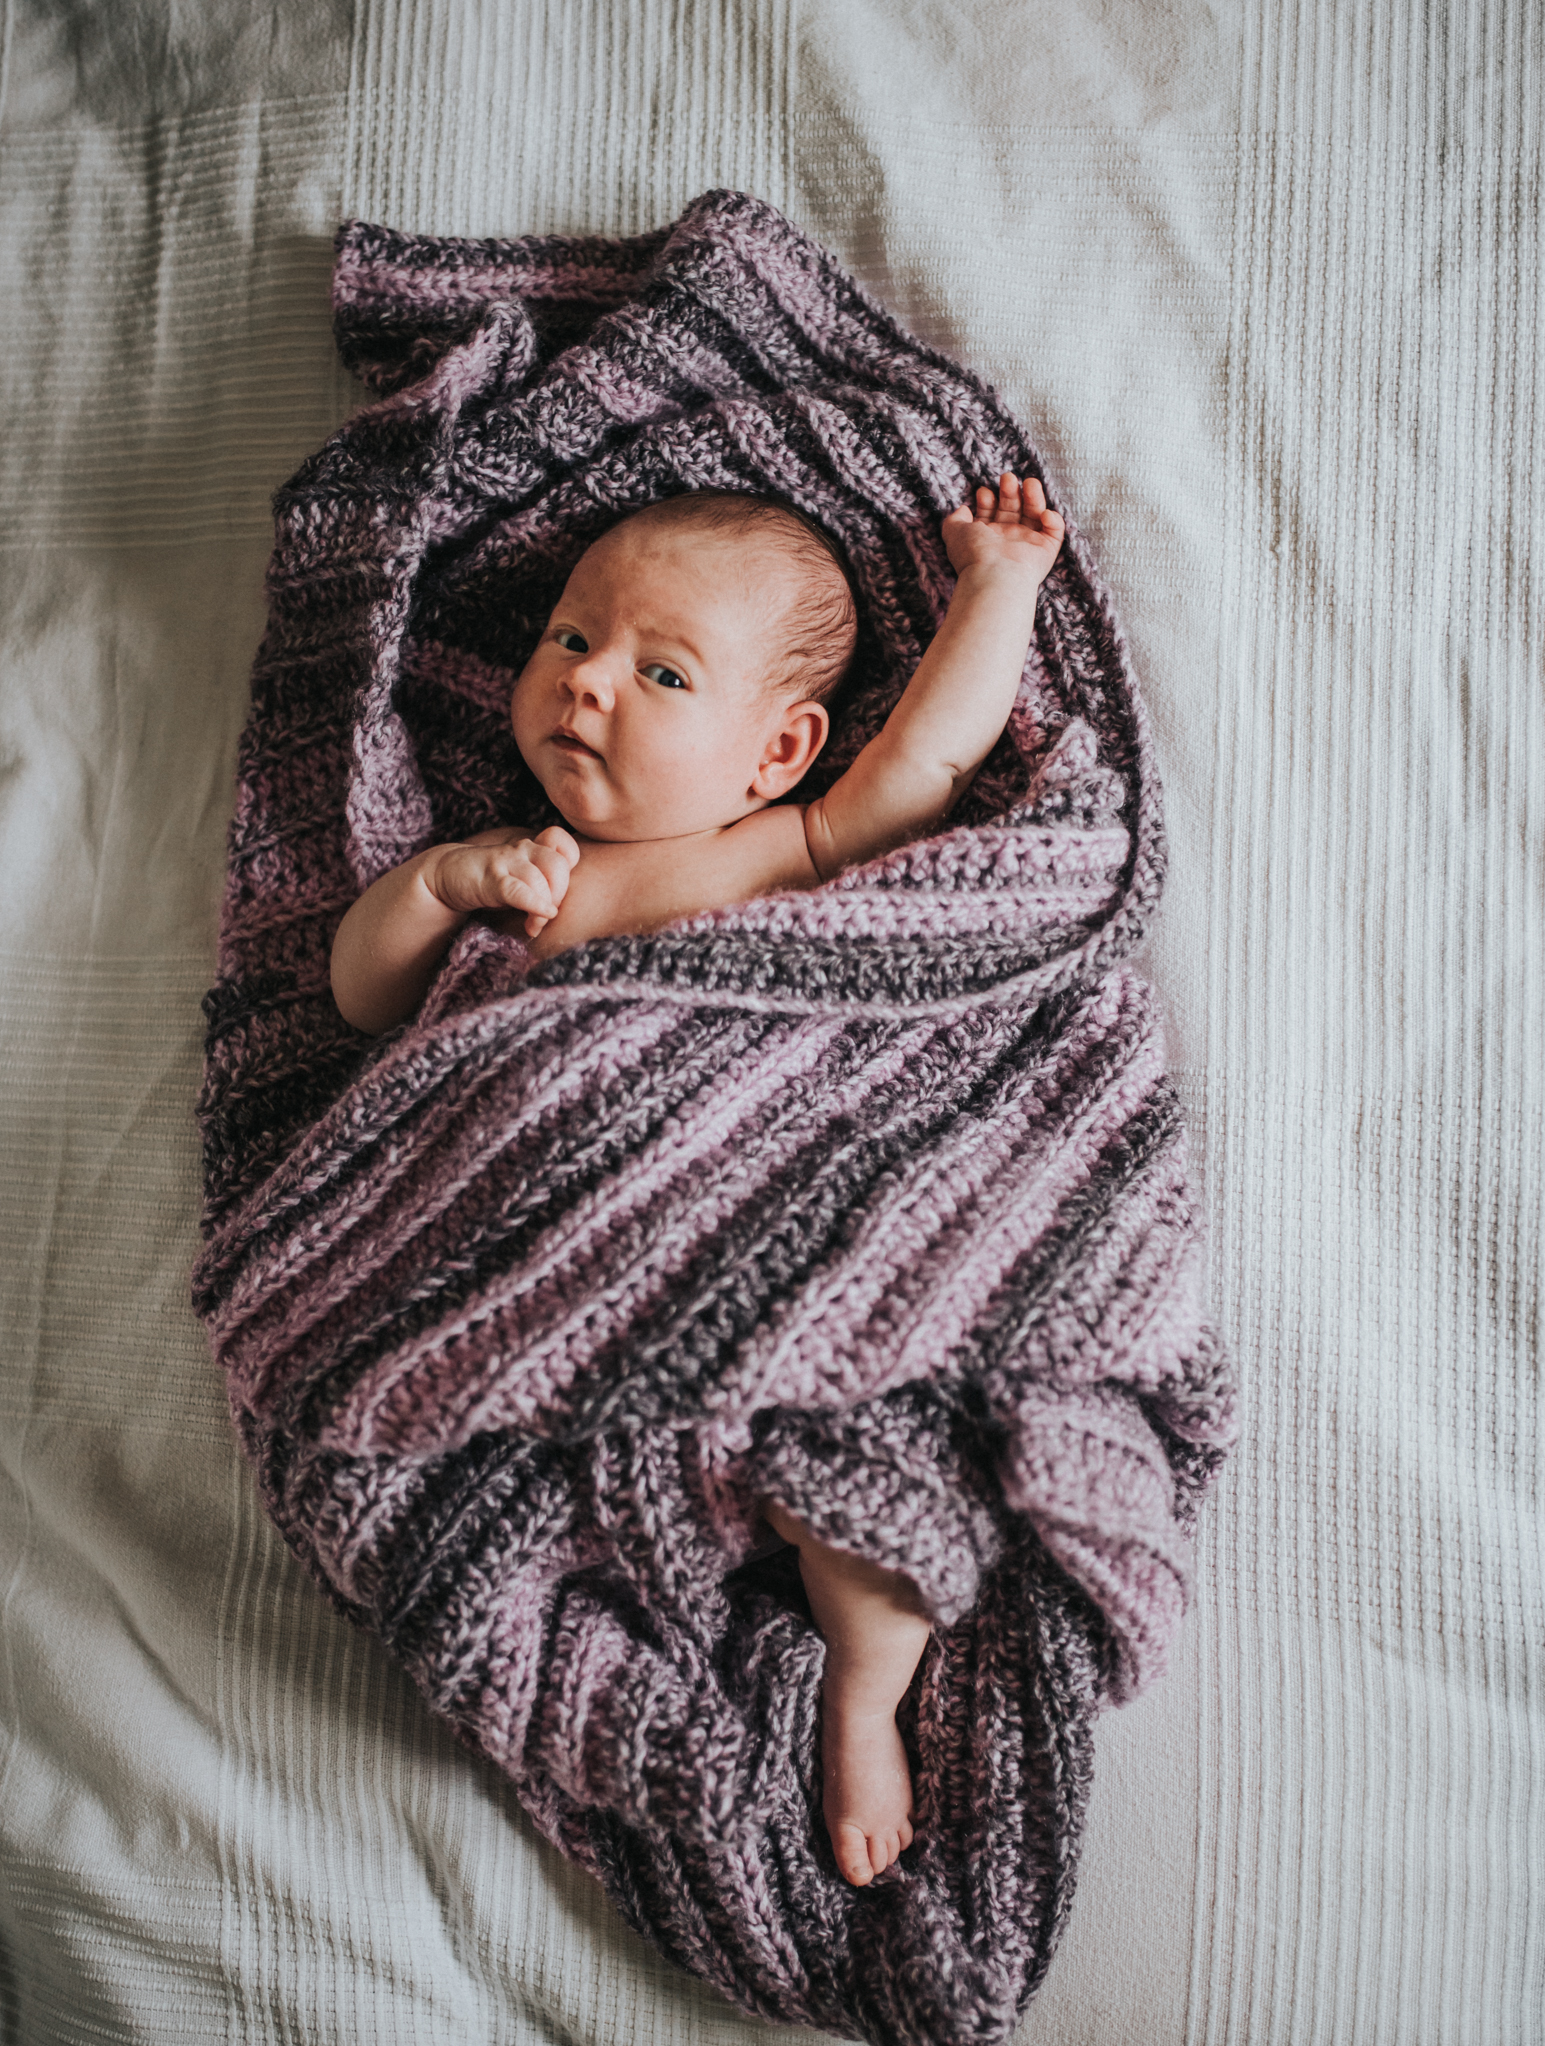 Newborn baby wrapped in blanket on bed